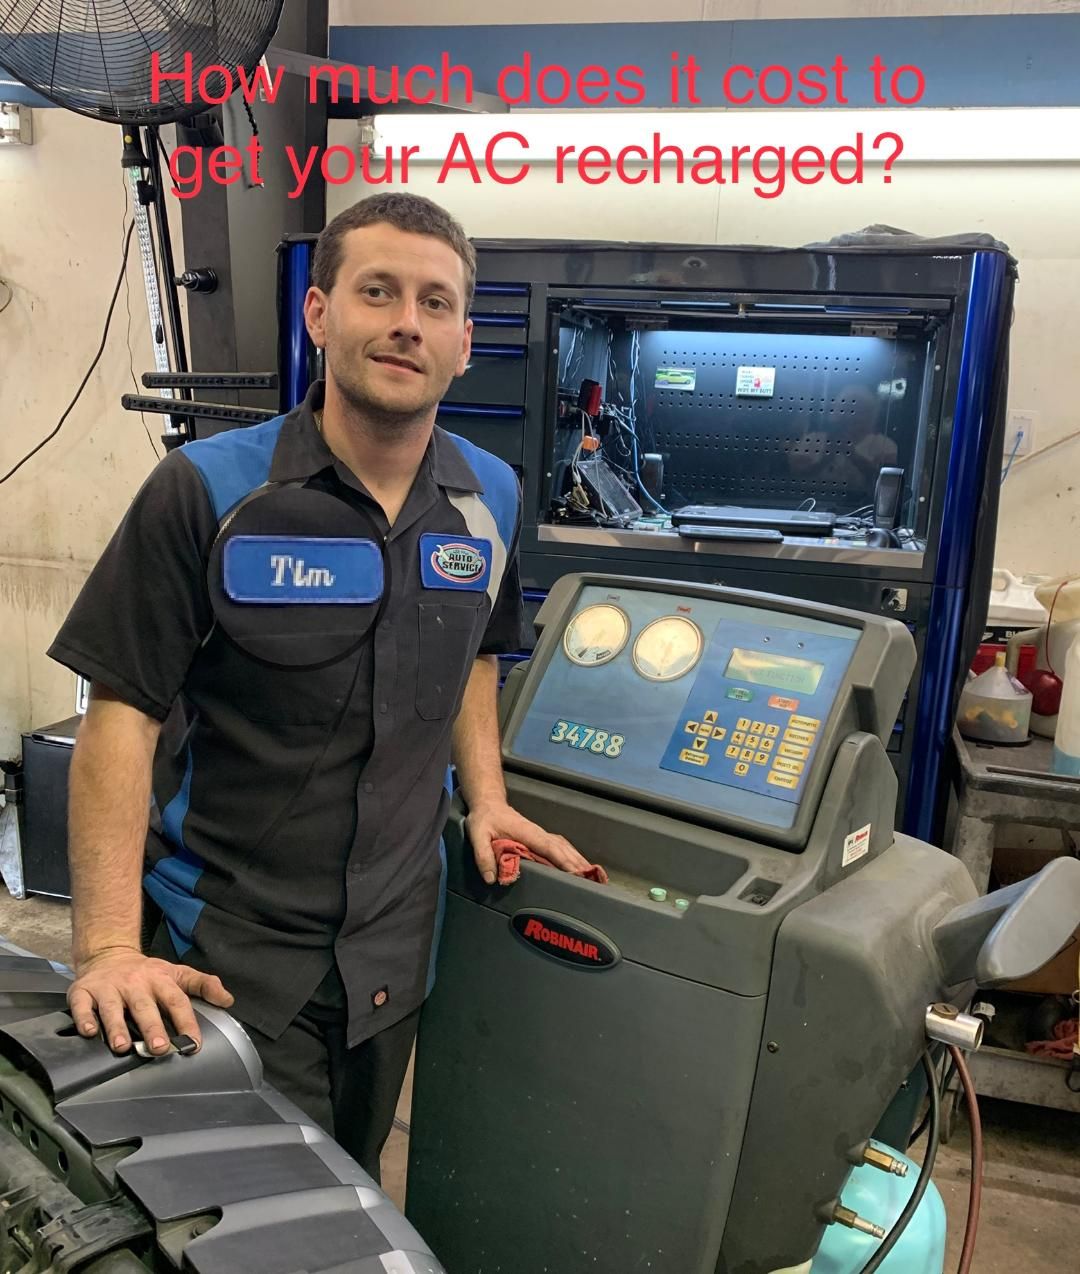 How Much Does It Cost To Get Your AC Recharged? At